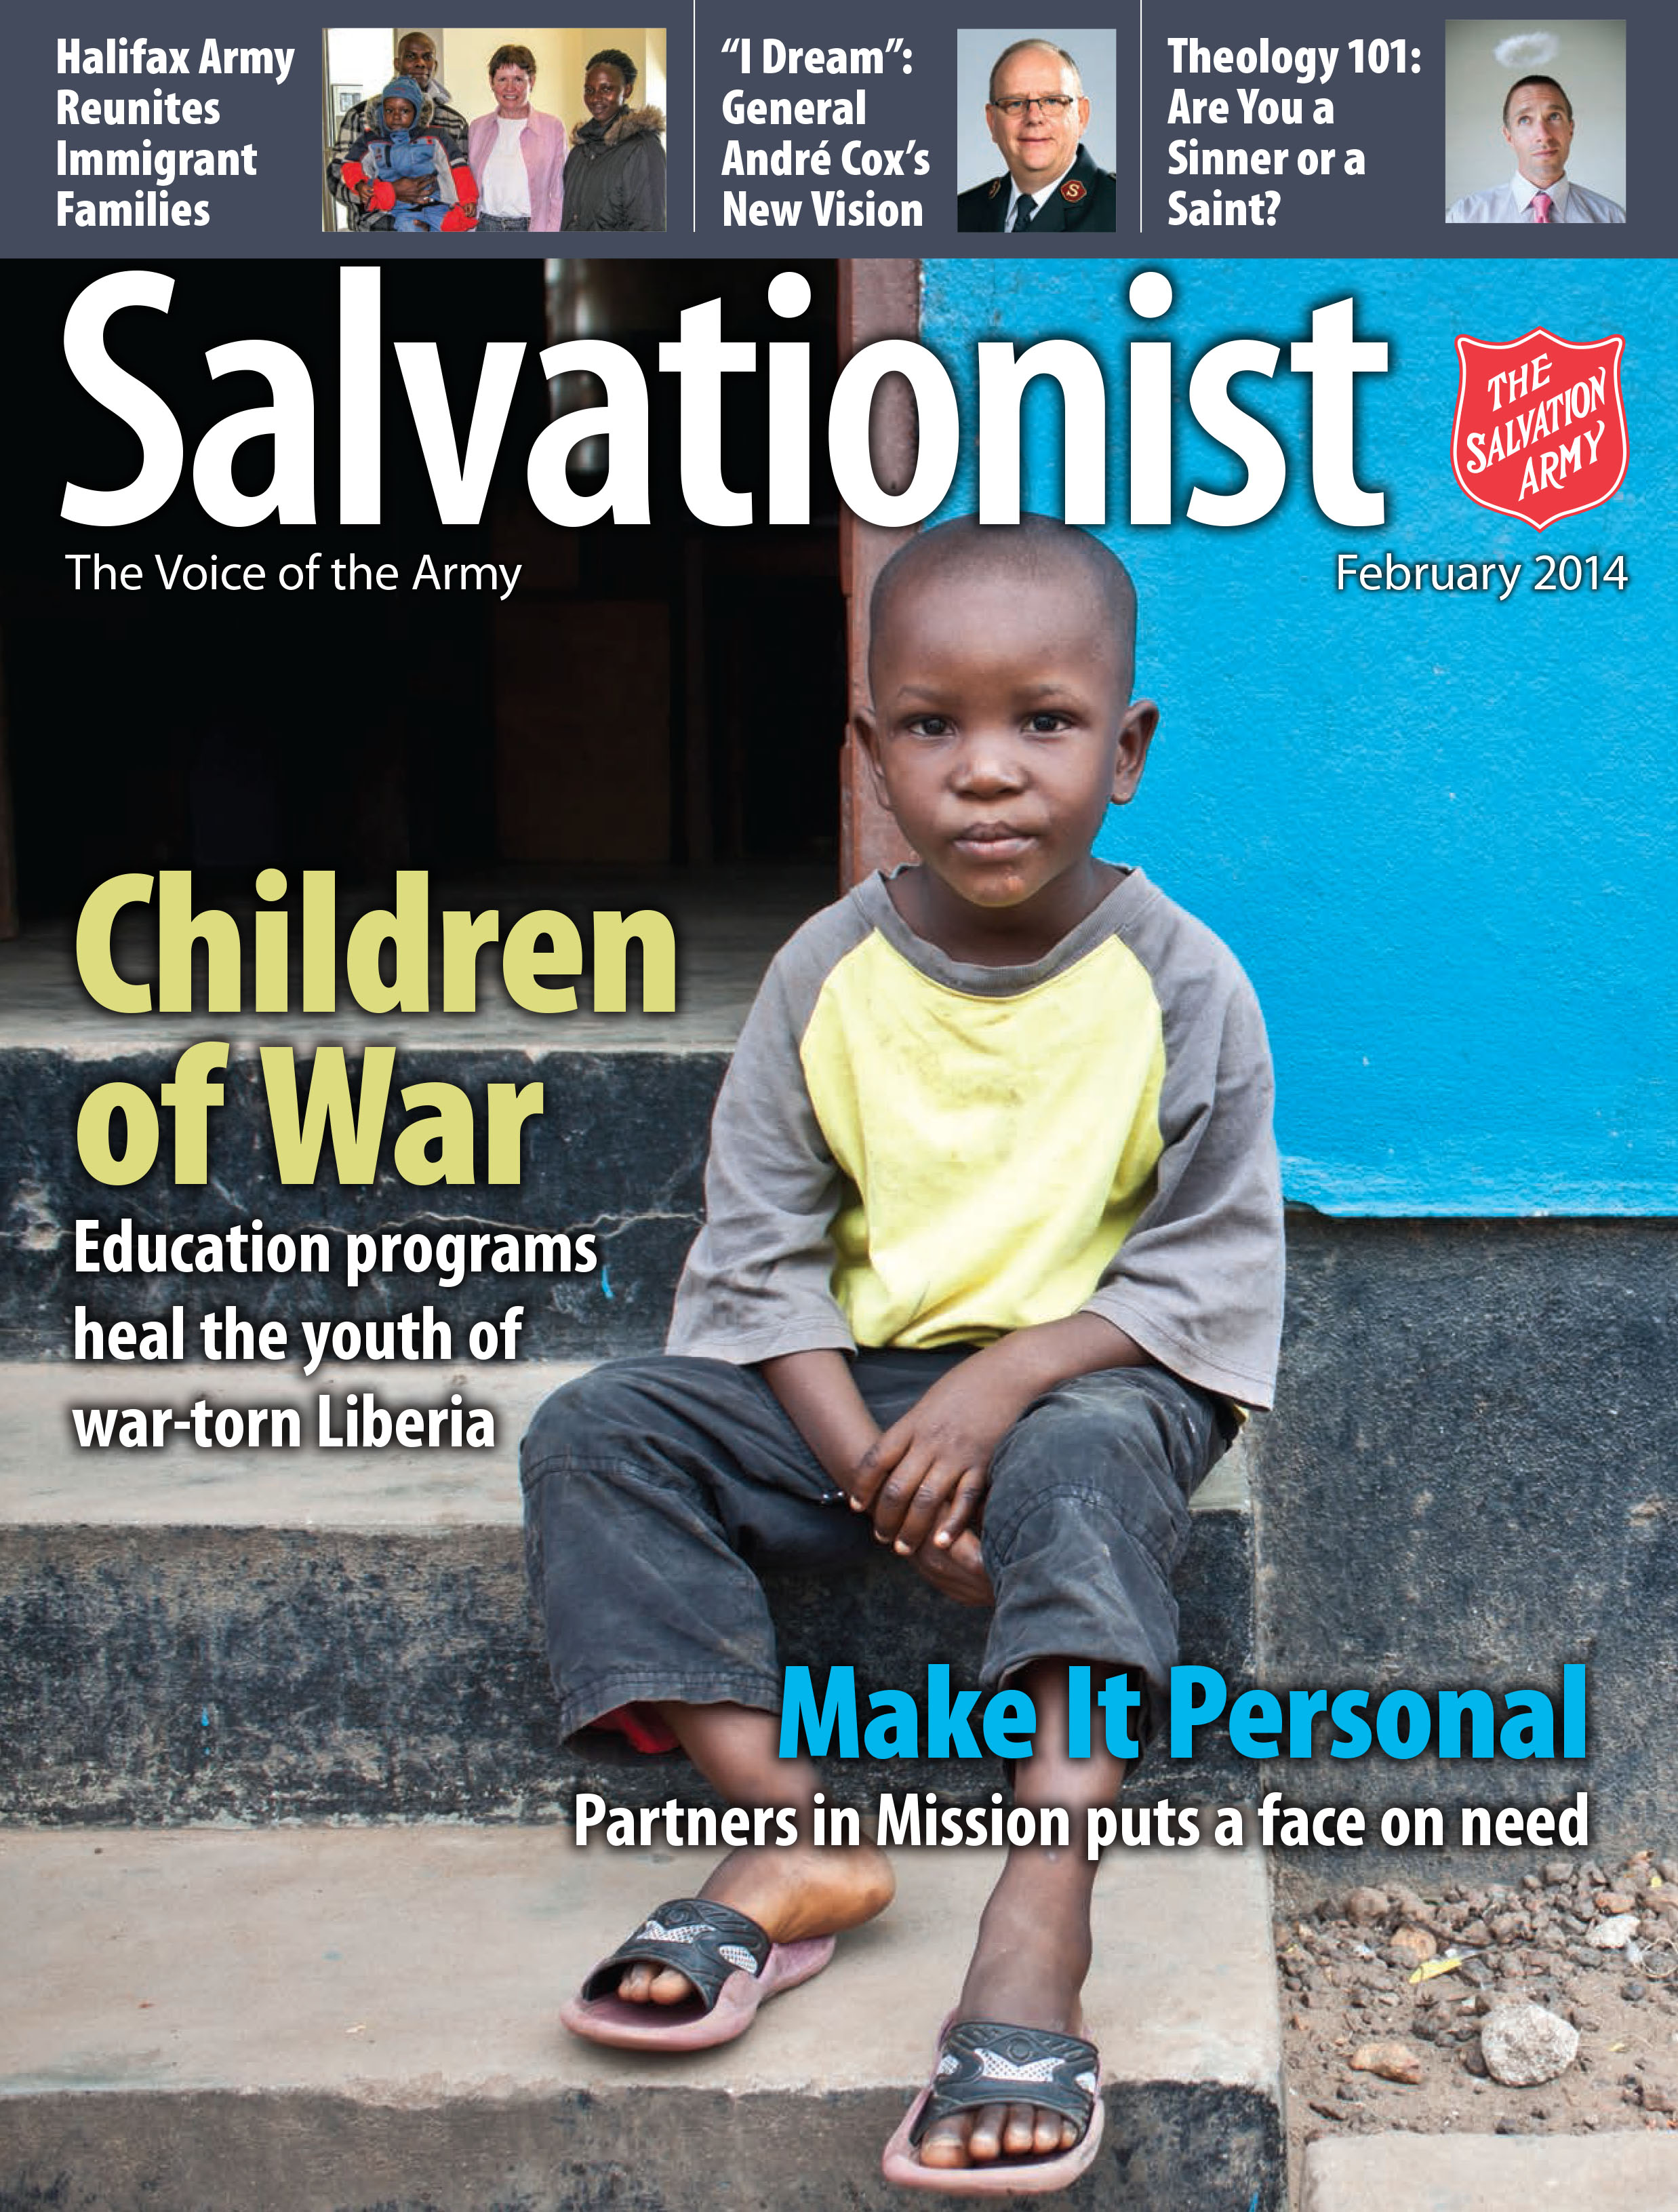 Cover of February 2014 issue of Salvationist